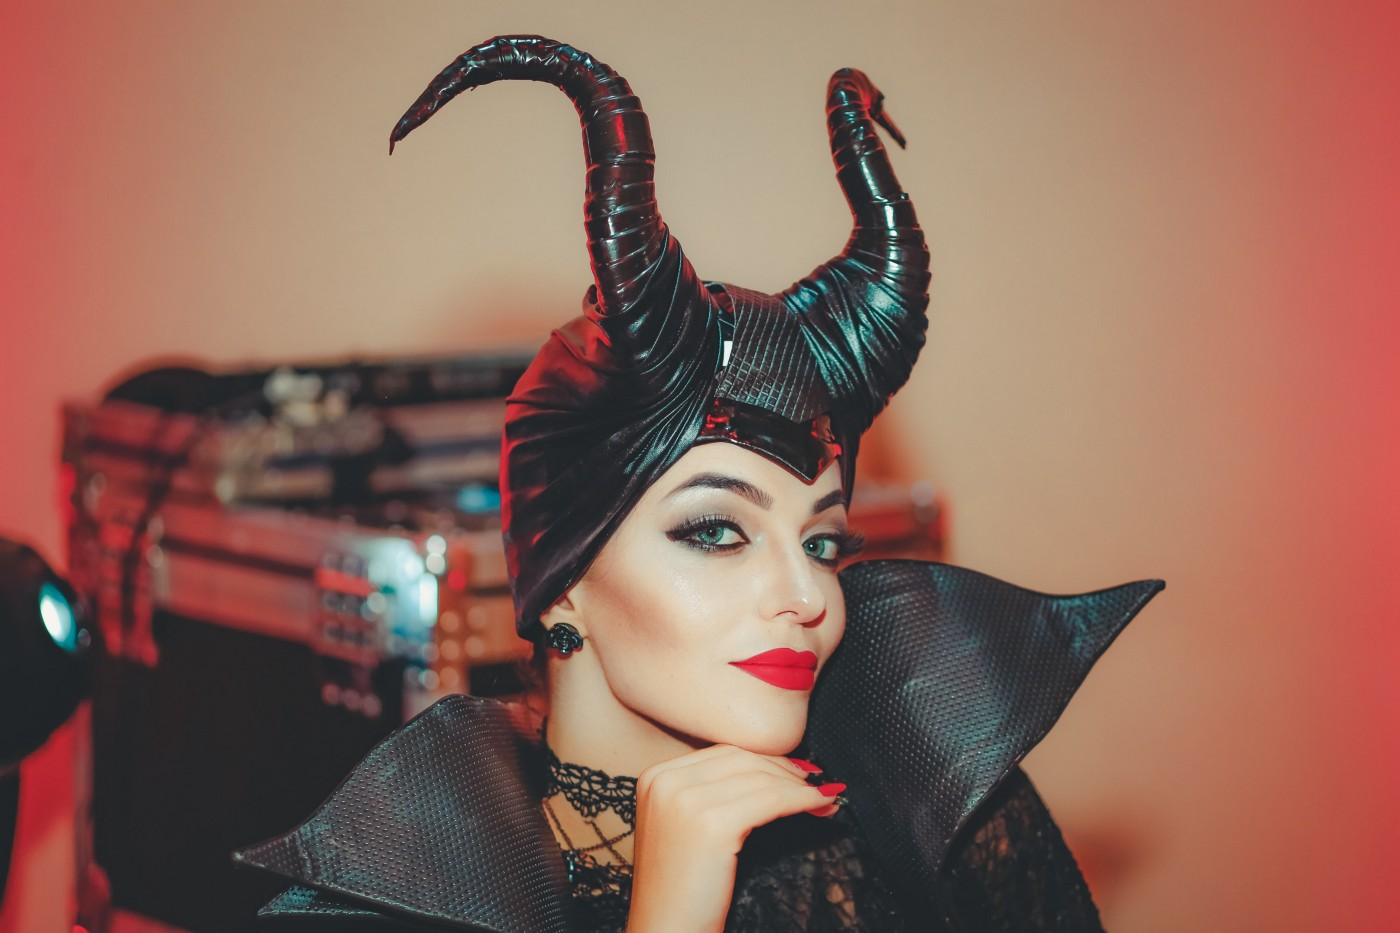 Maleficent is a popular costume for cosplayers and Halloween